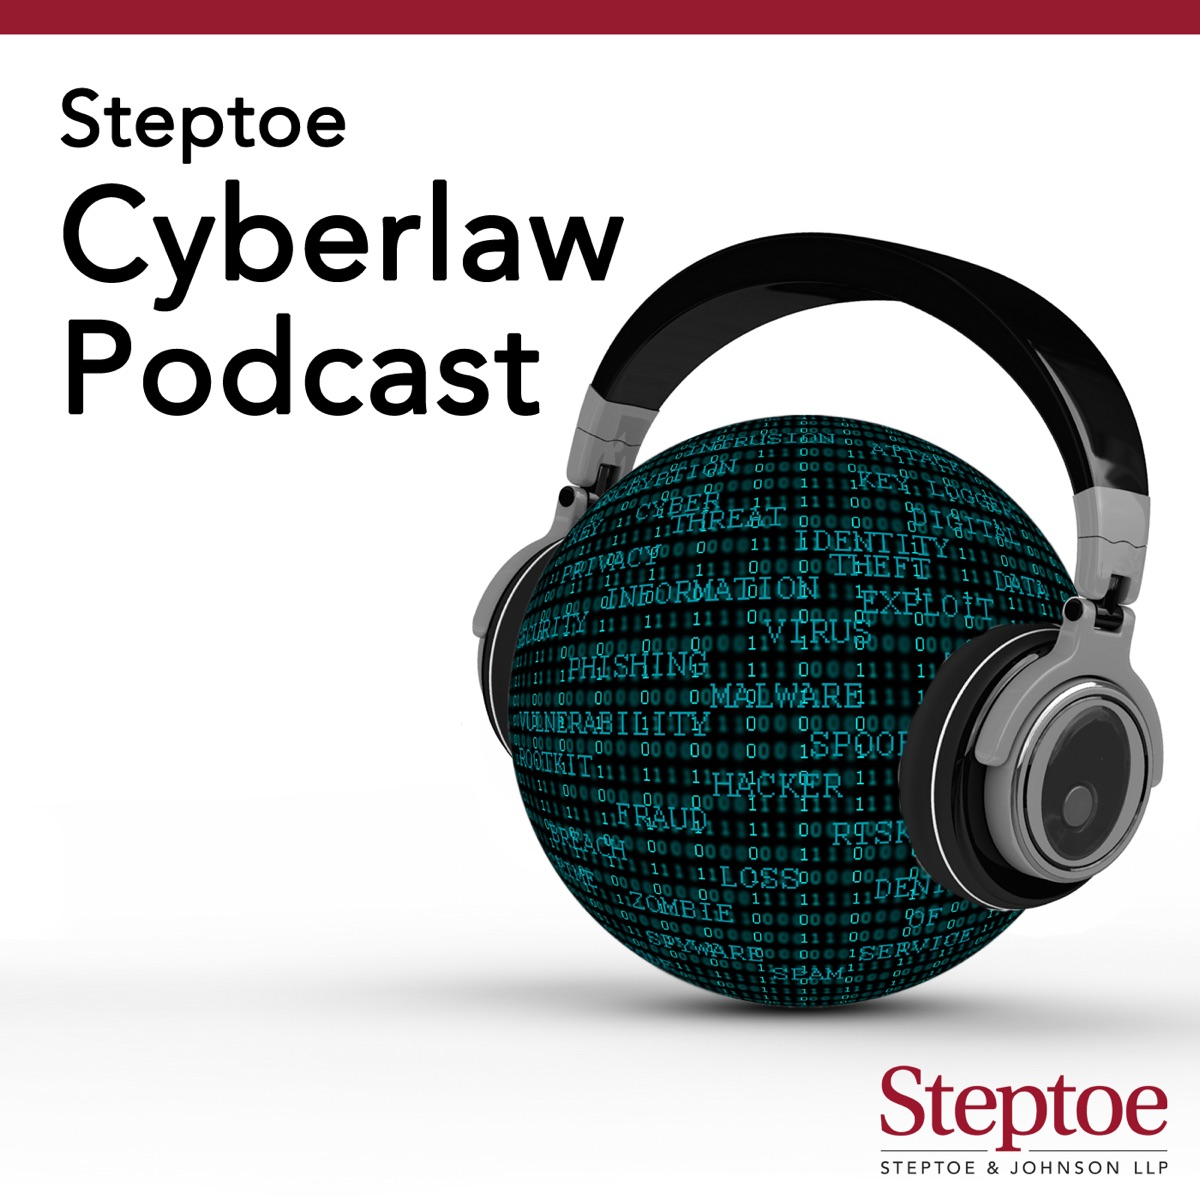 The Cyberlaw Podcast